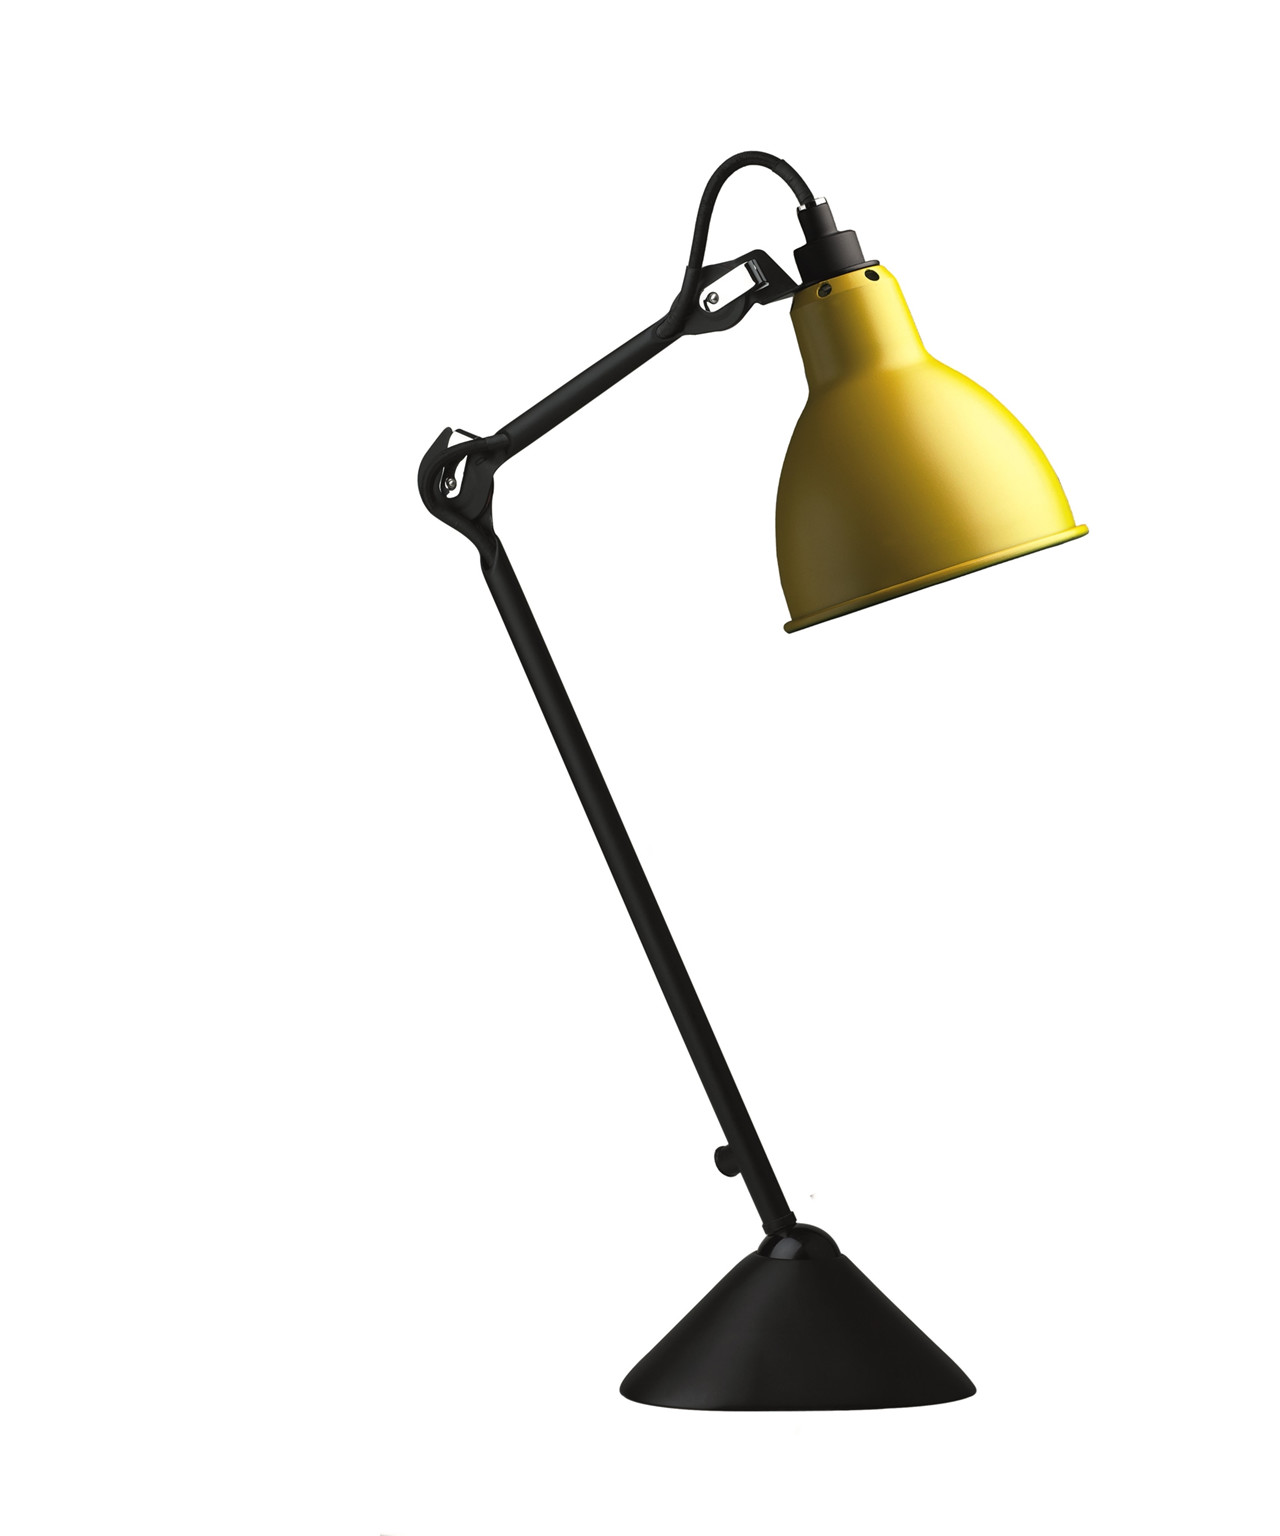 Image of   205 Bordlampe Gul/Sort - Lampe Gras